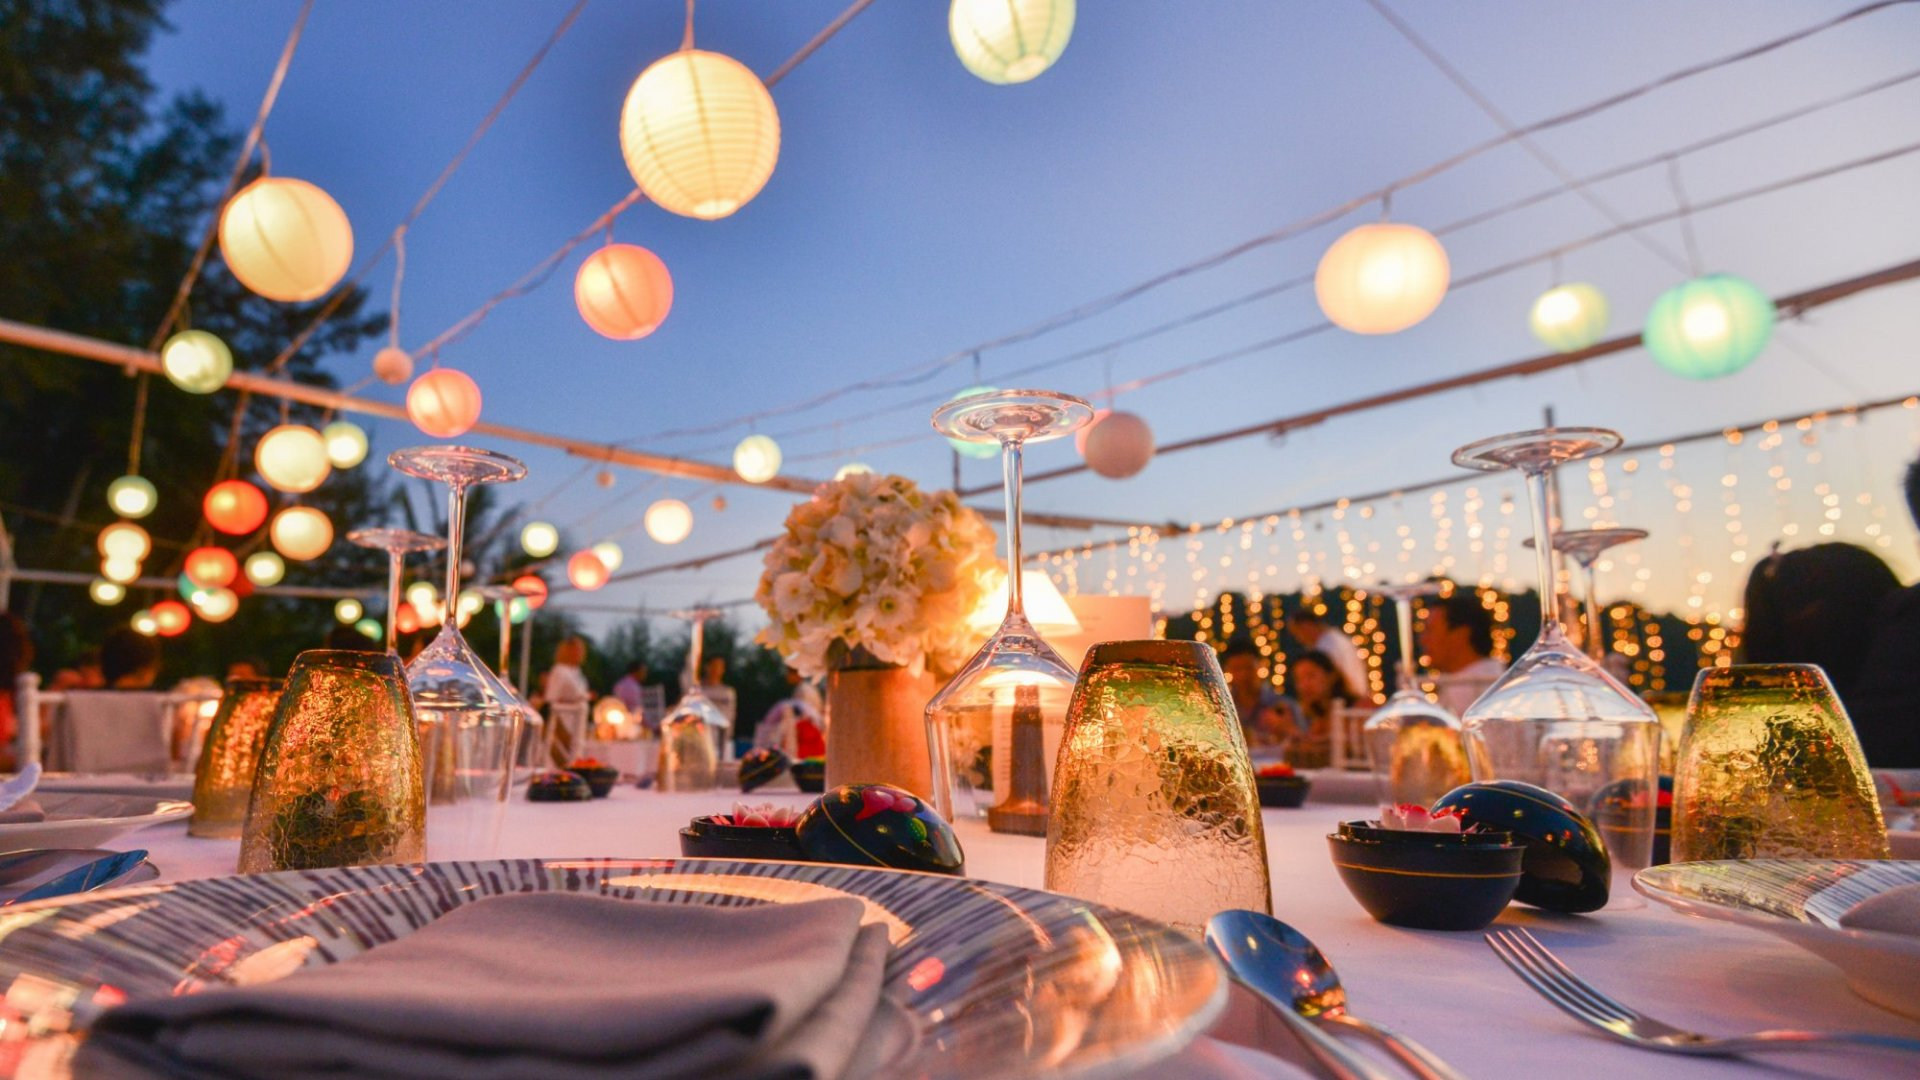 8 Tips for Planning a Buzzworthy Event